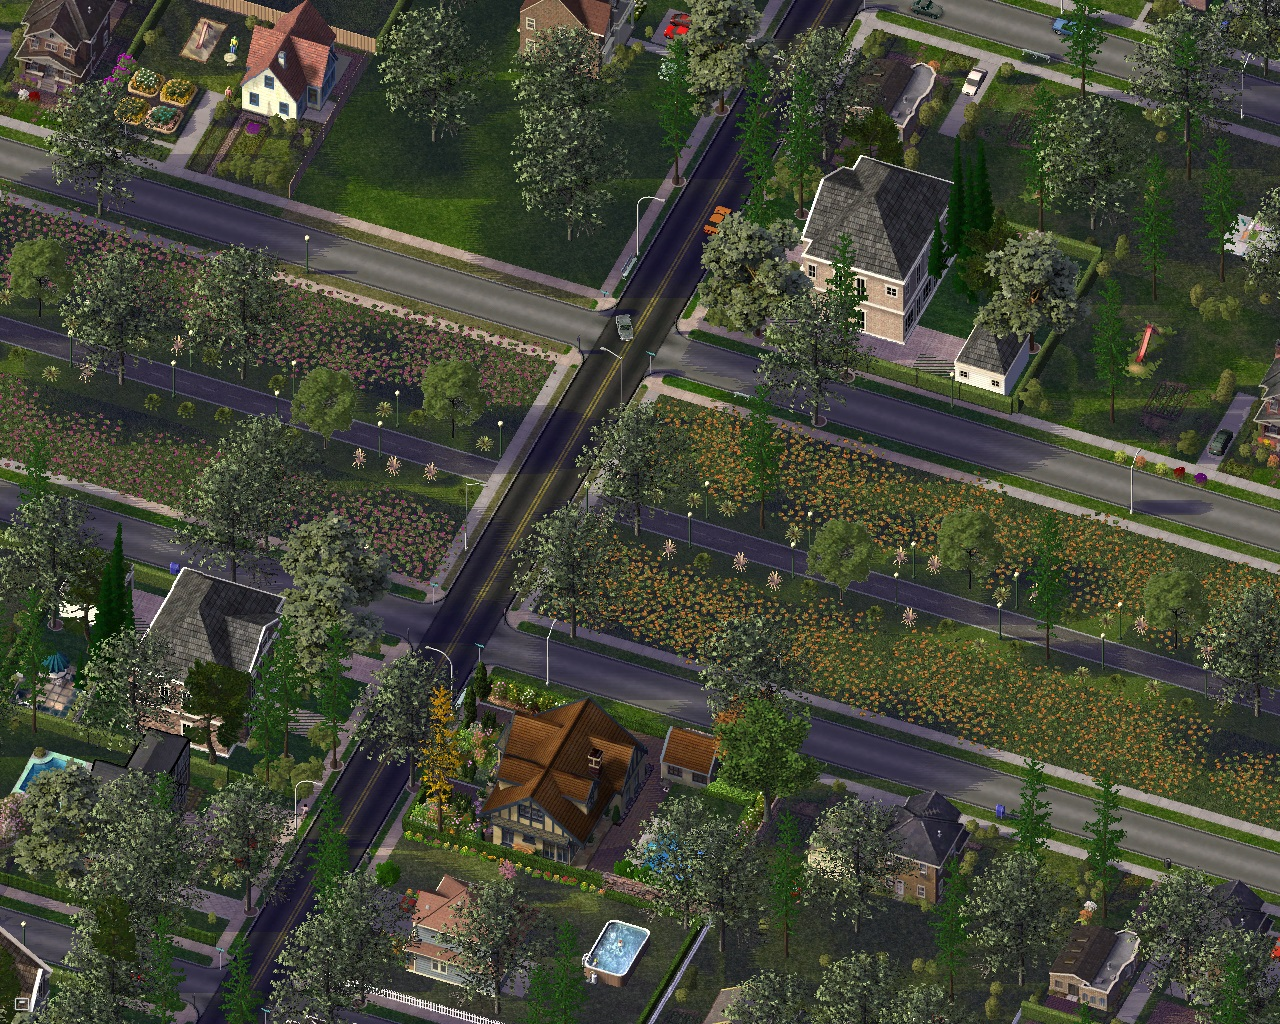 The_Southeast_Gardens_Neighborhood.jpg